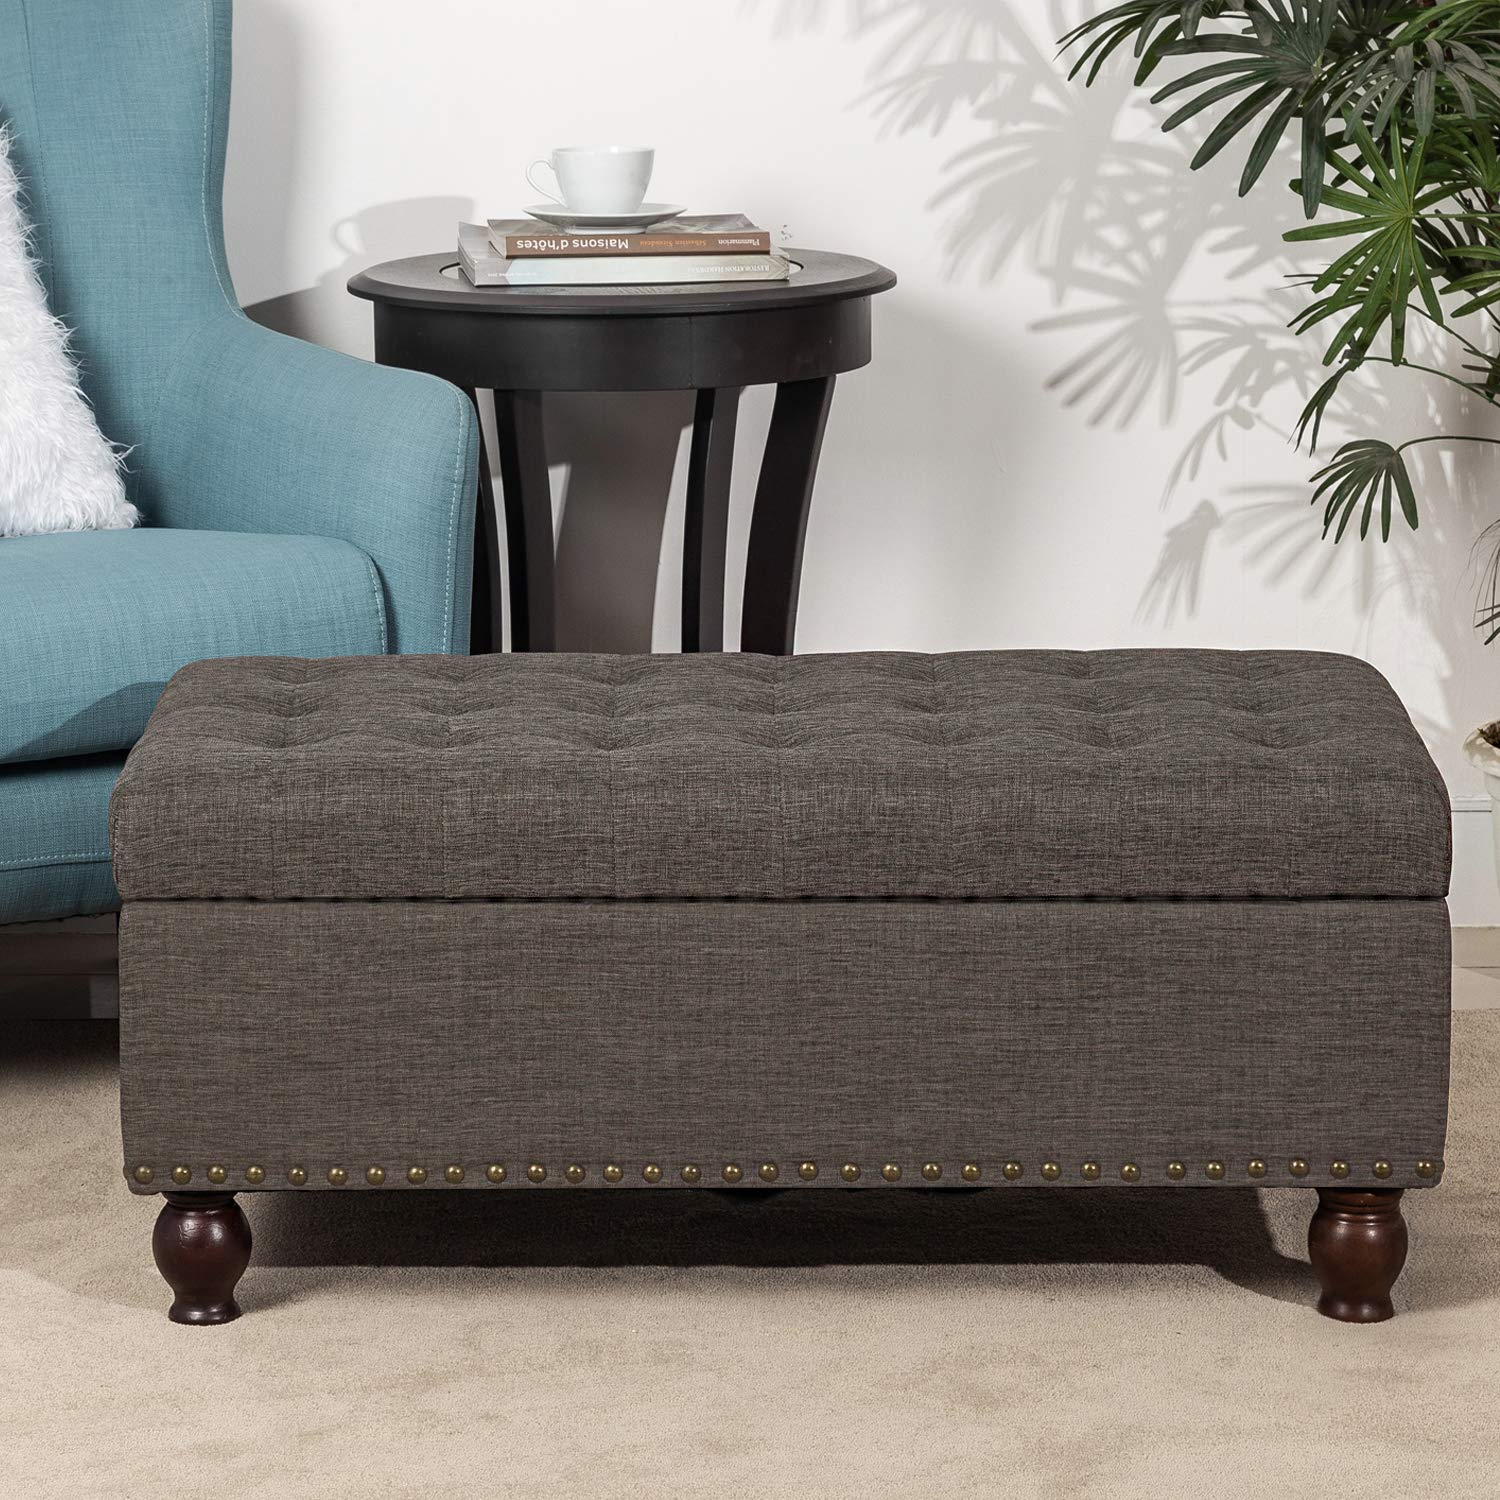 Elegan Home Life Lift Top Ottoman Storage Bench Brown Grey Buy Online In Saint Kitts And Nevis At Saintkitts Desertcart Com Productid 30254654